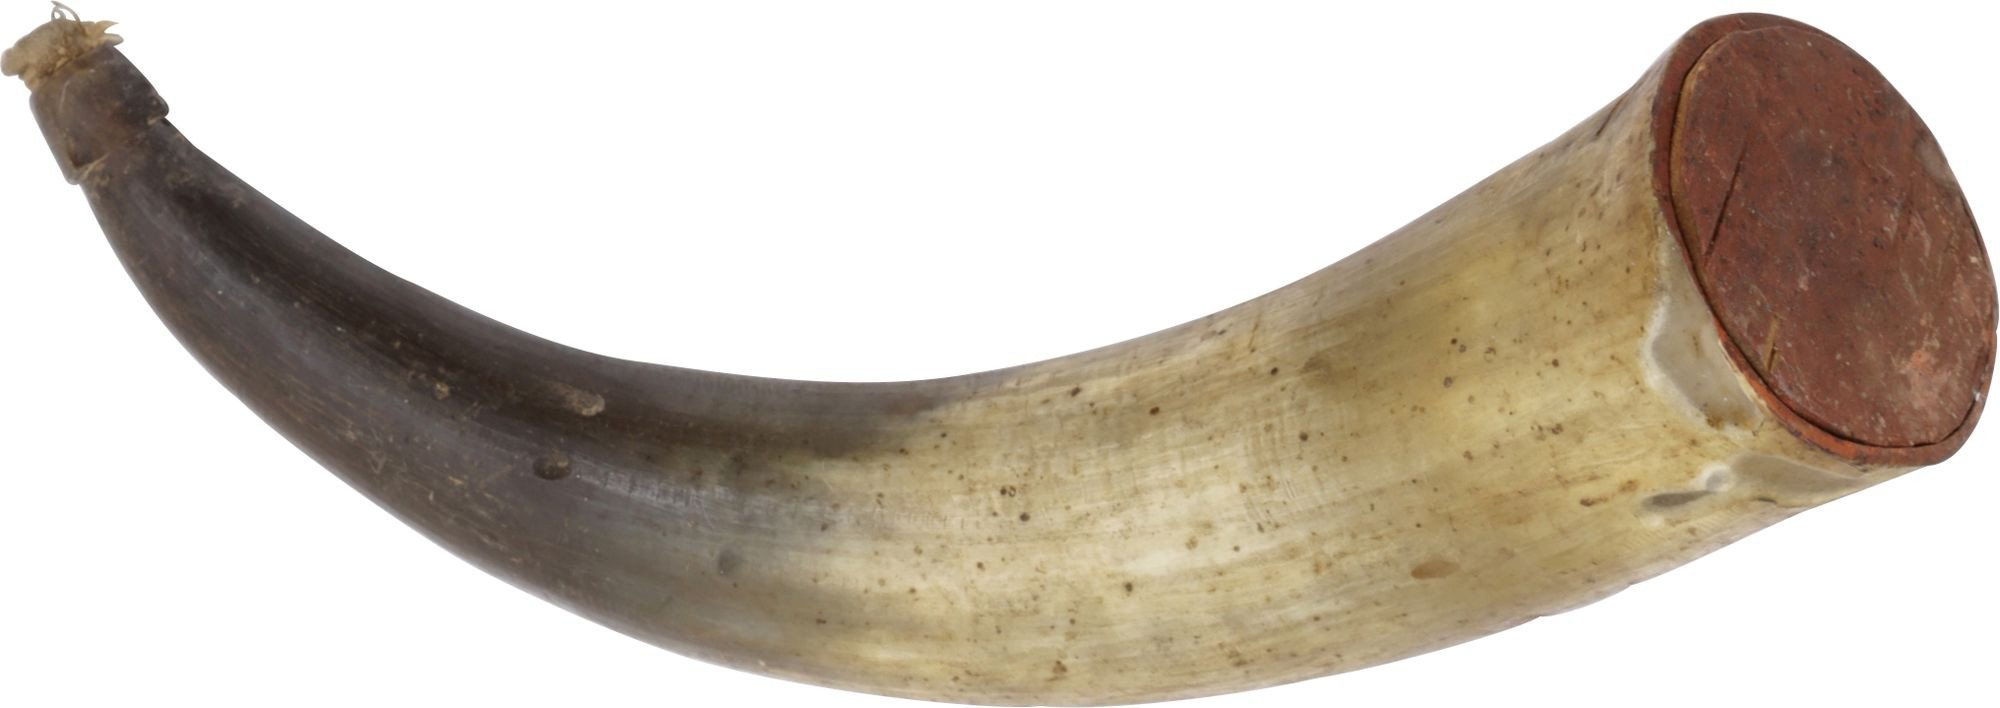 Colonial American Rifle Horn - Product